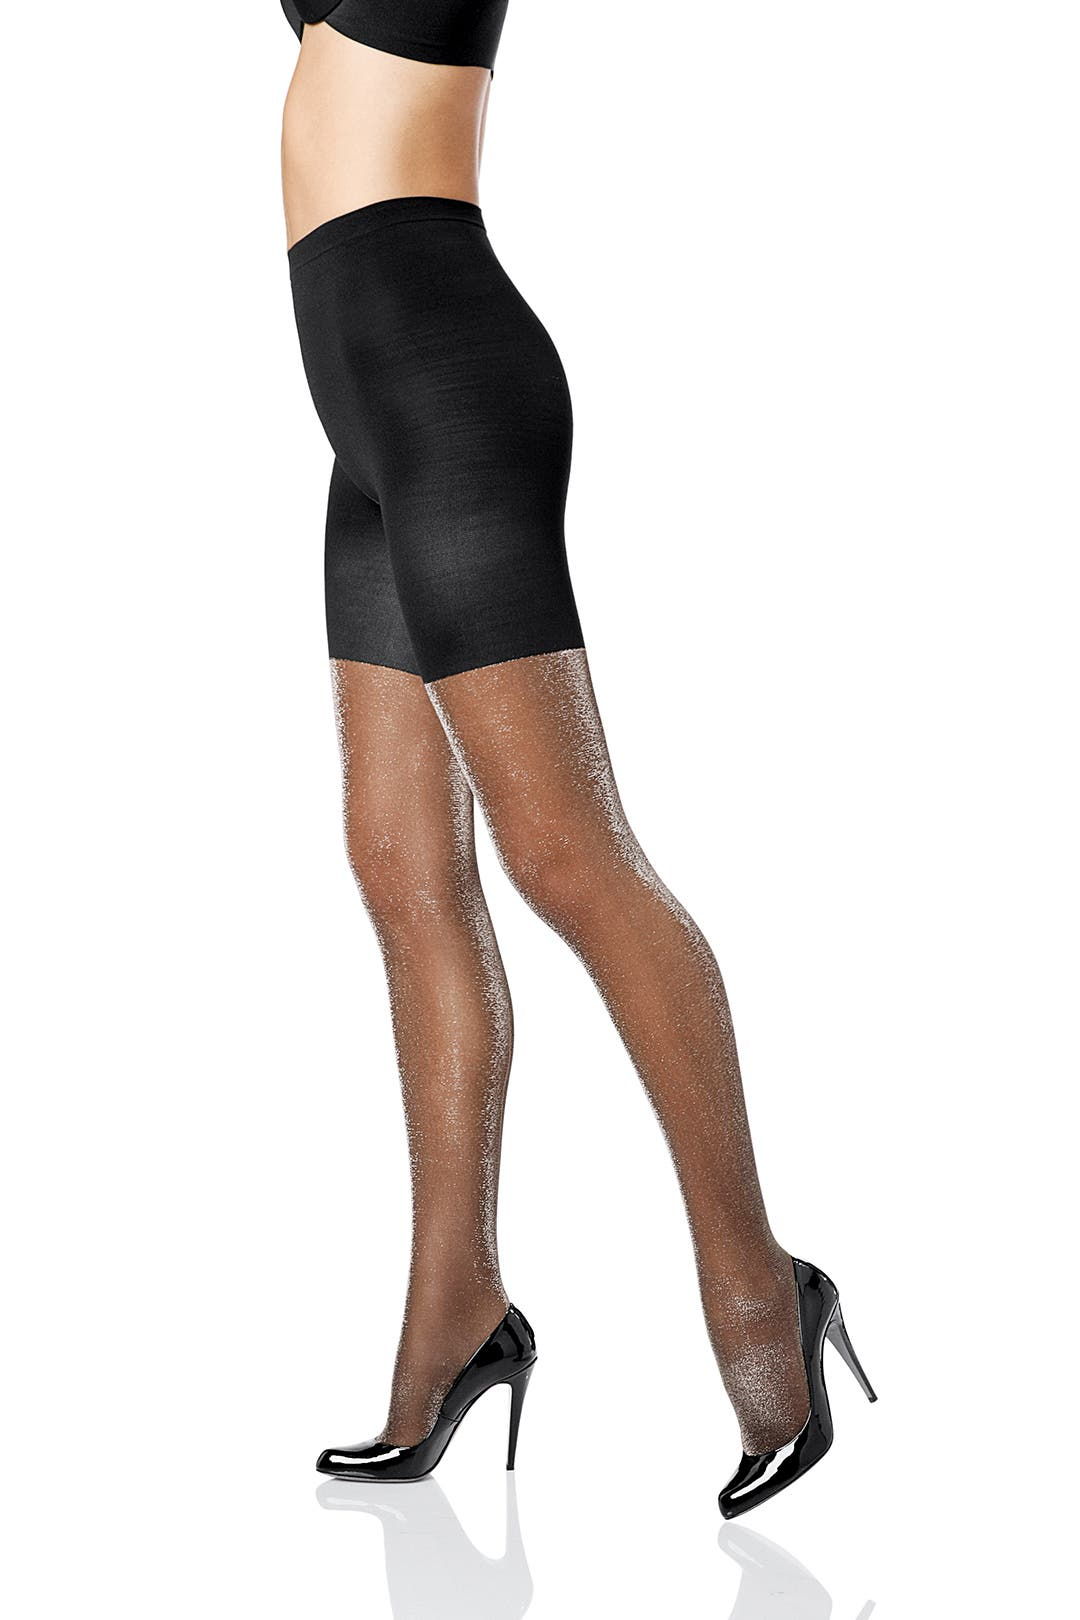 Metallic Luxe Tight End Tights in Black Silver by Spanx